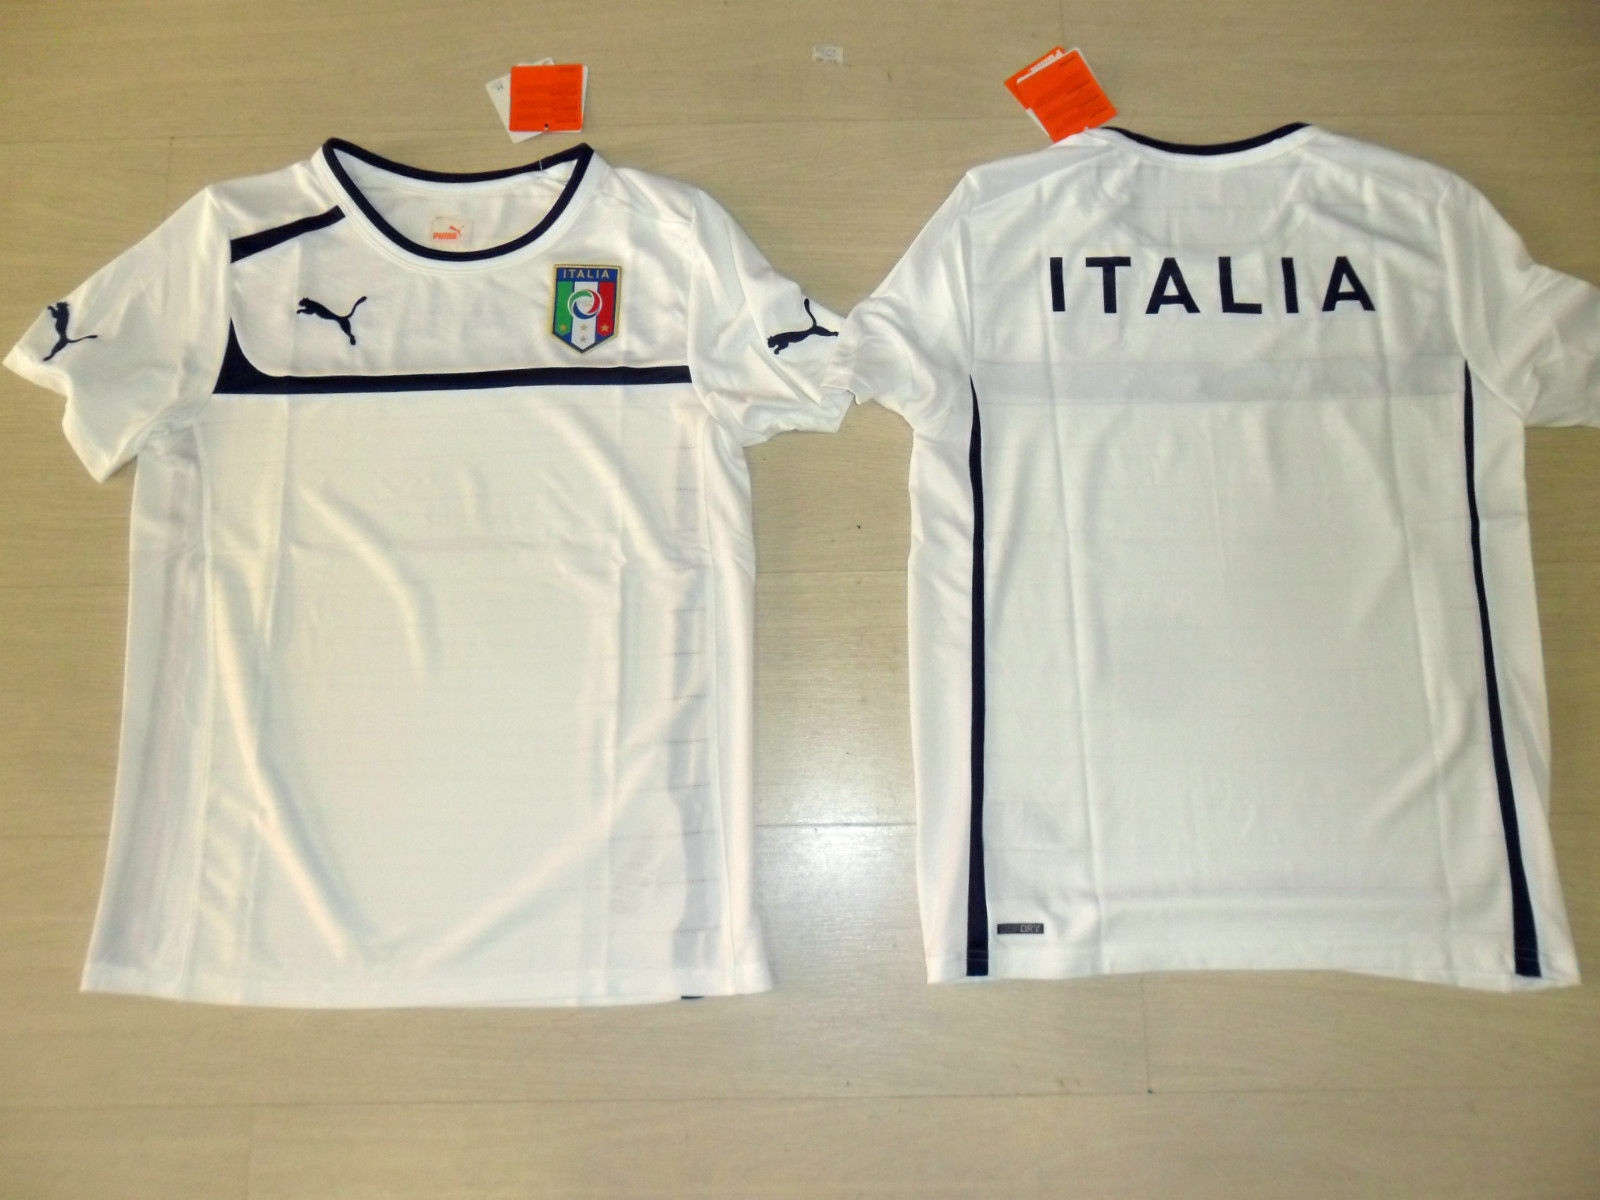 10193 ITALIEN PUMA TRIKOT TRAINING KIND T-SHIRT JUNIOR JUNIOR JUNIOR TRAINING TRIKOT 6d9382